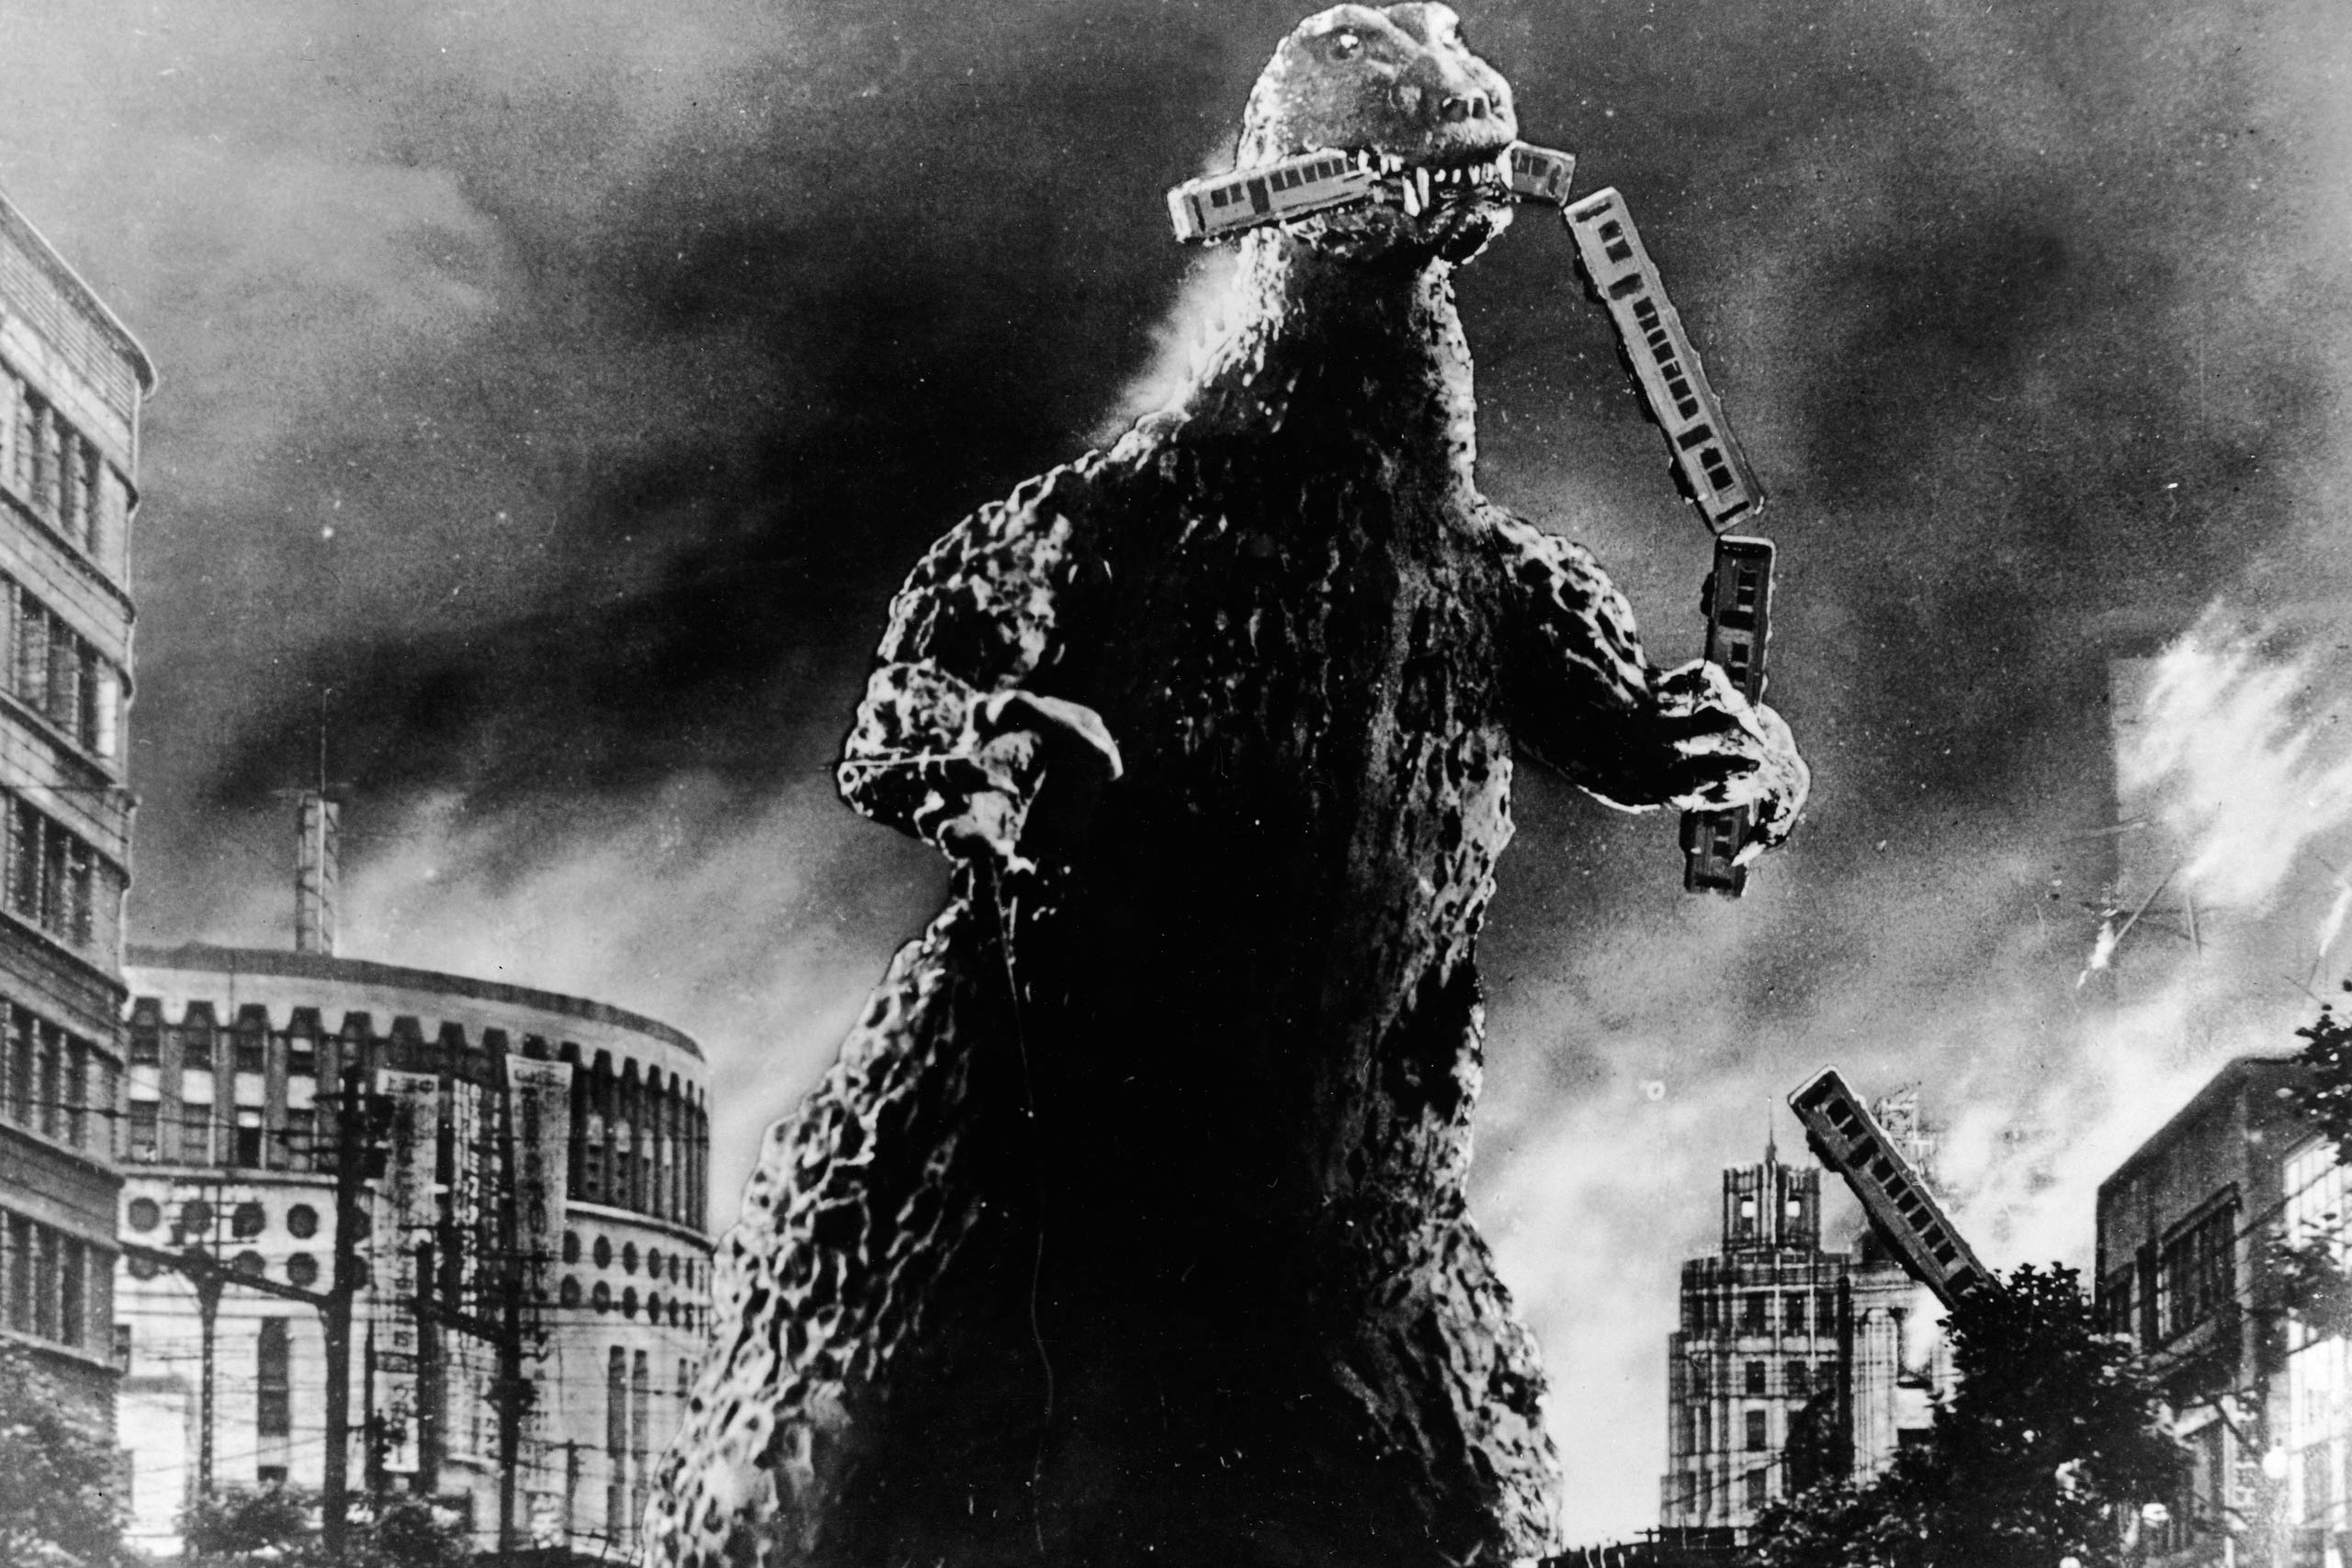 Godzilla is seen in a scene from Godzilla, King of the Monsters!, 1956.